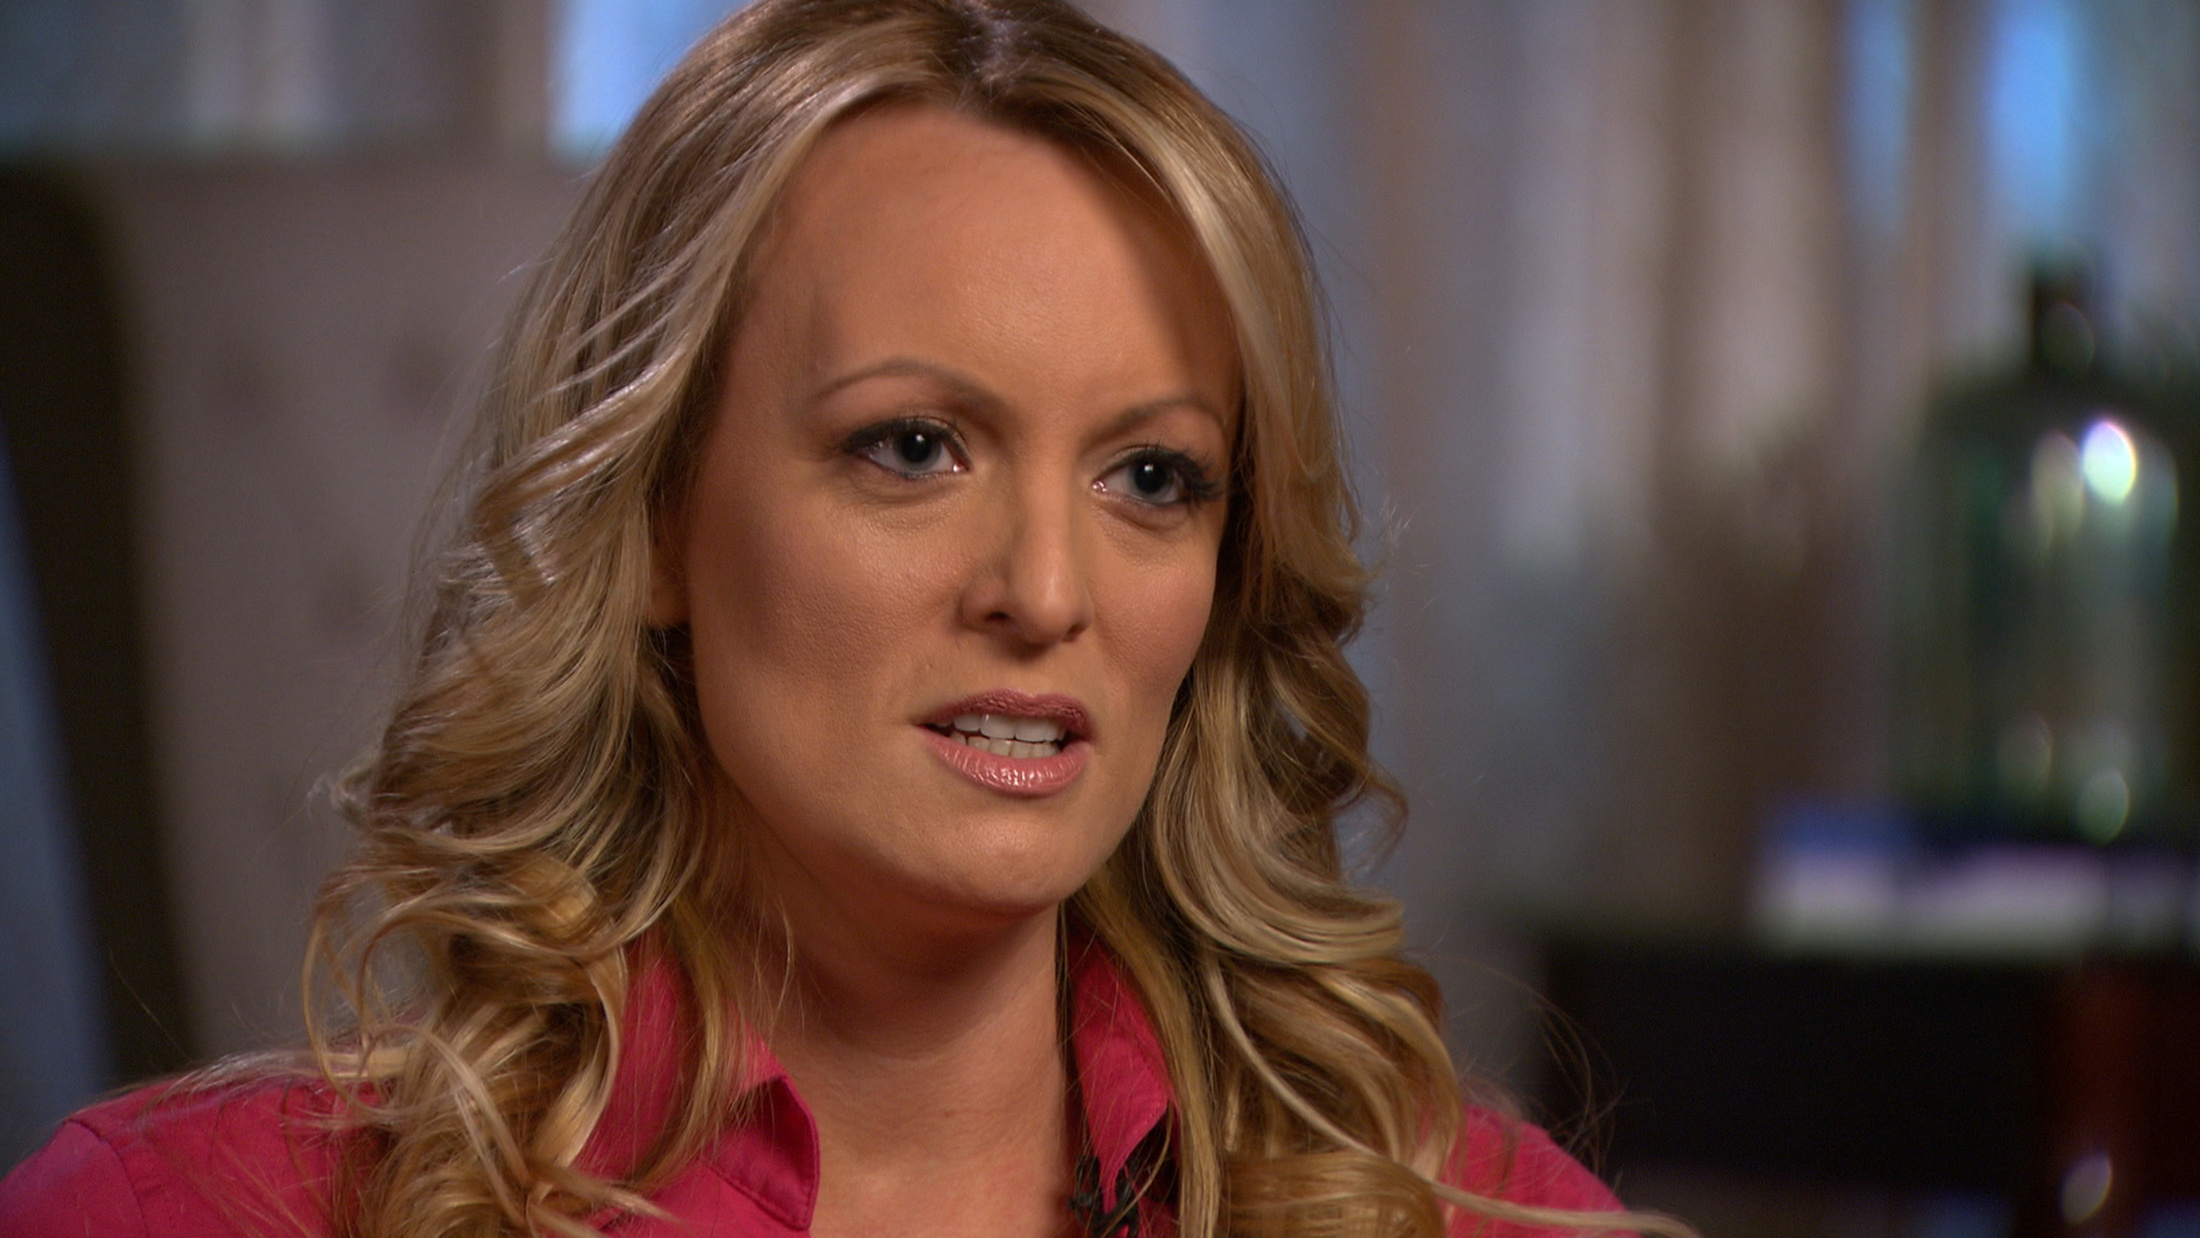 Stormy Daniels interviewed by Anderson Cooper